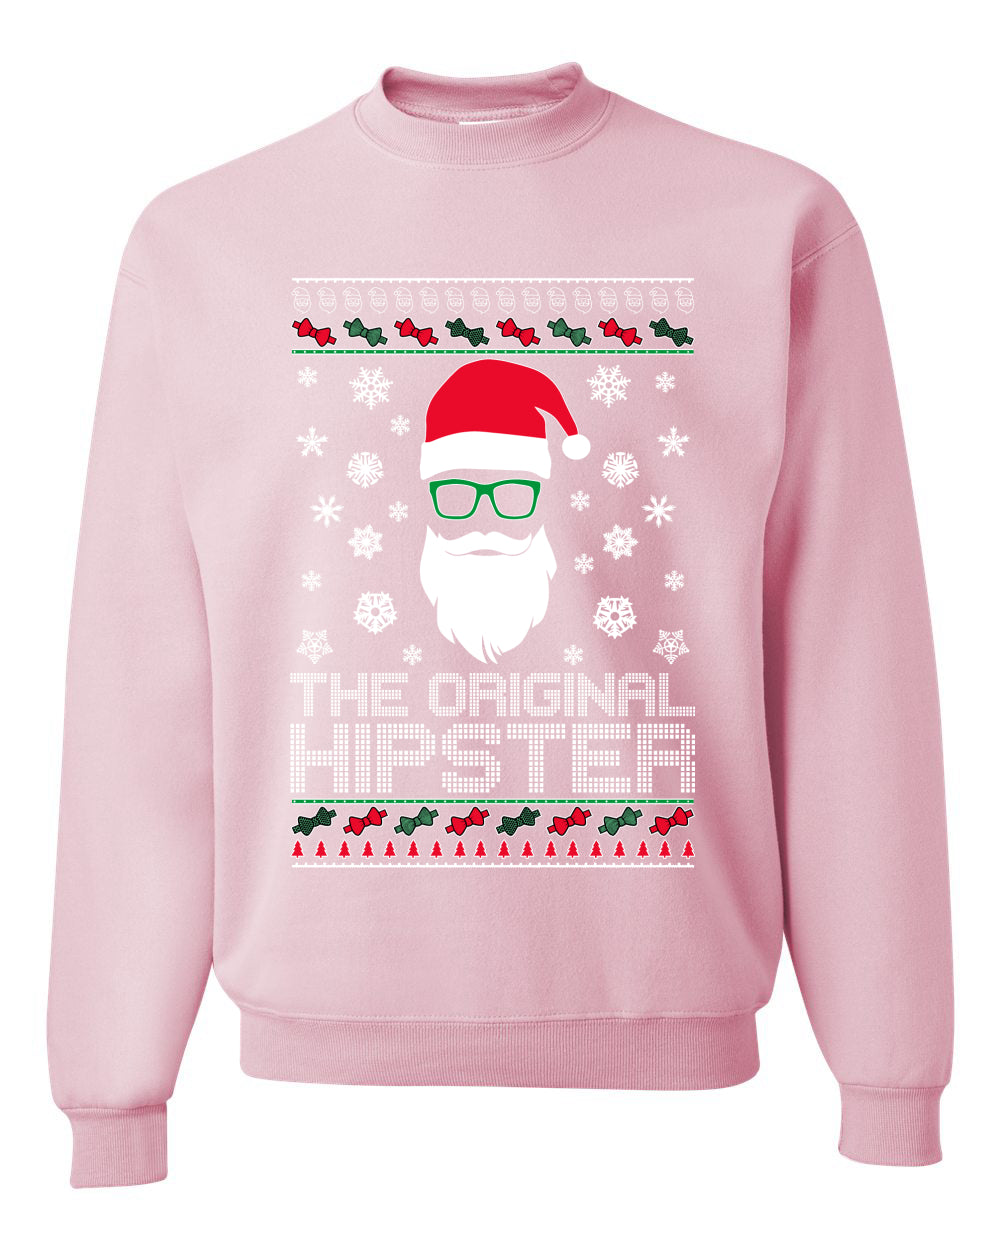 The Original Hipster Funny Santa Beard Xmas Christmas Unisex Crewneck Graphic Sweatshirt